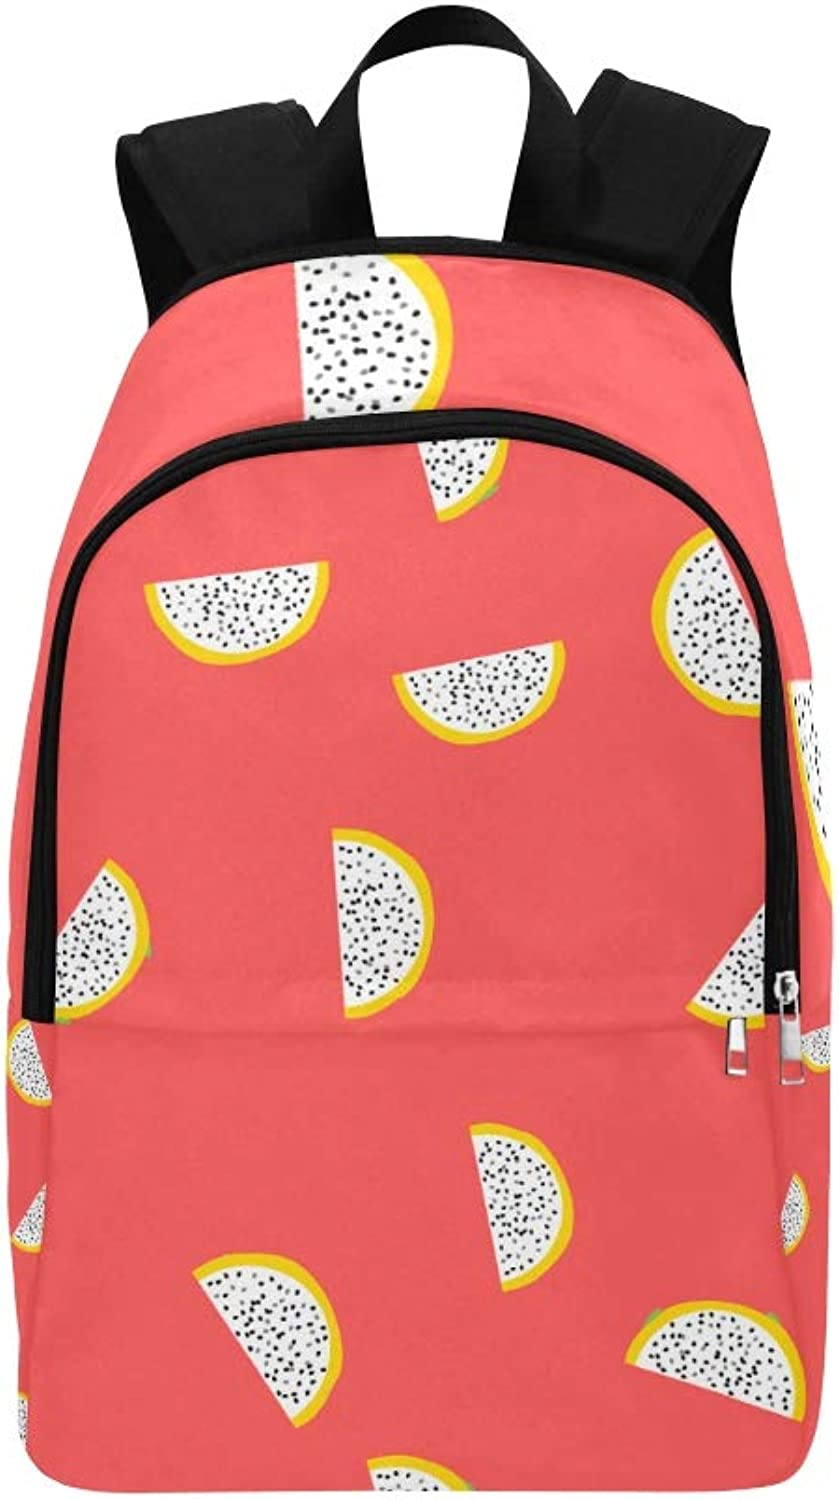 Hand Drawn Watercolor Dragon Fruits Casual Daypack Travel Bag College School Backpack for Mens and Women